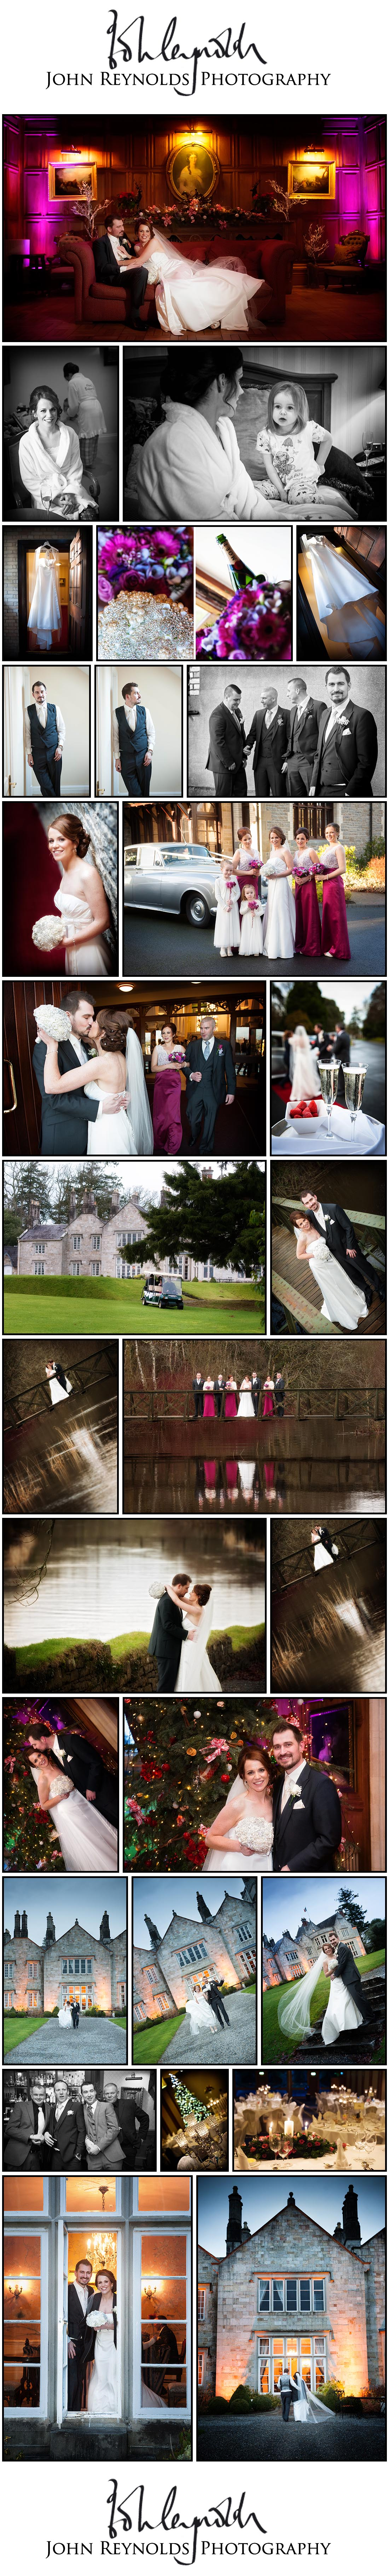 Blog Collage-Yvonne & Shane